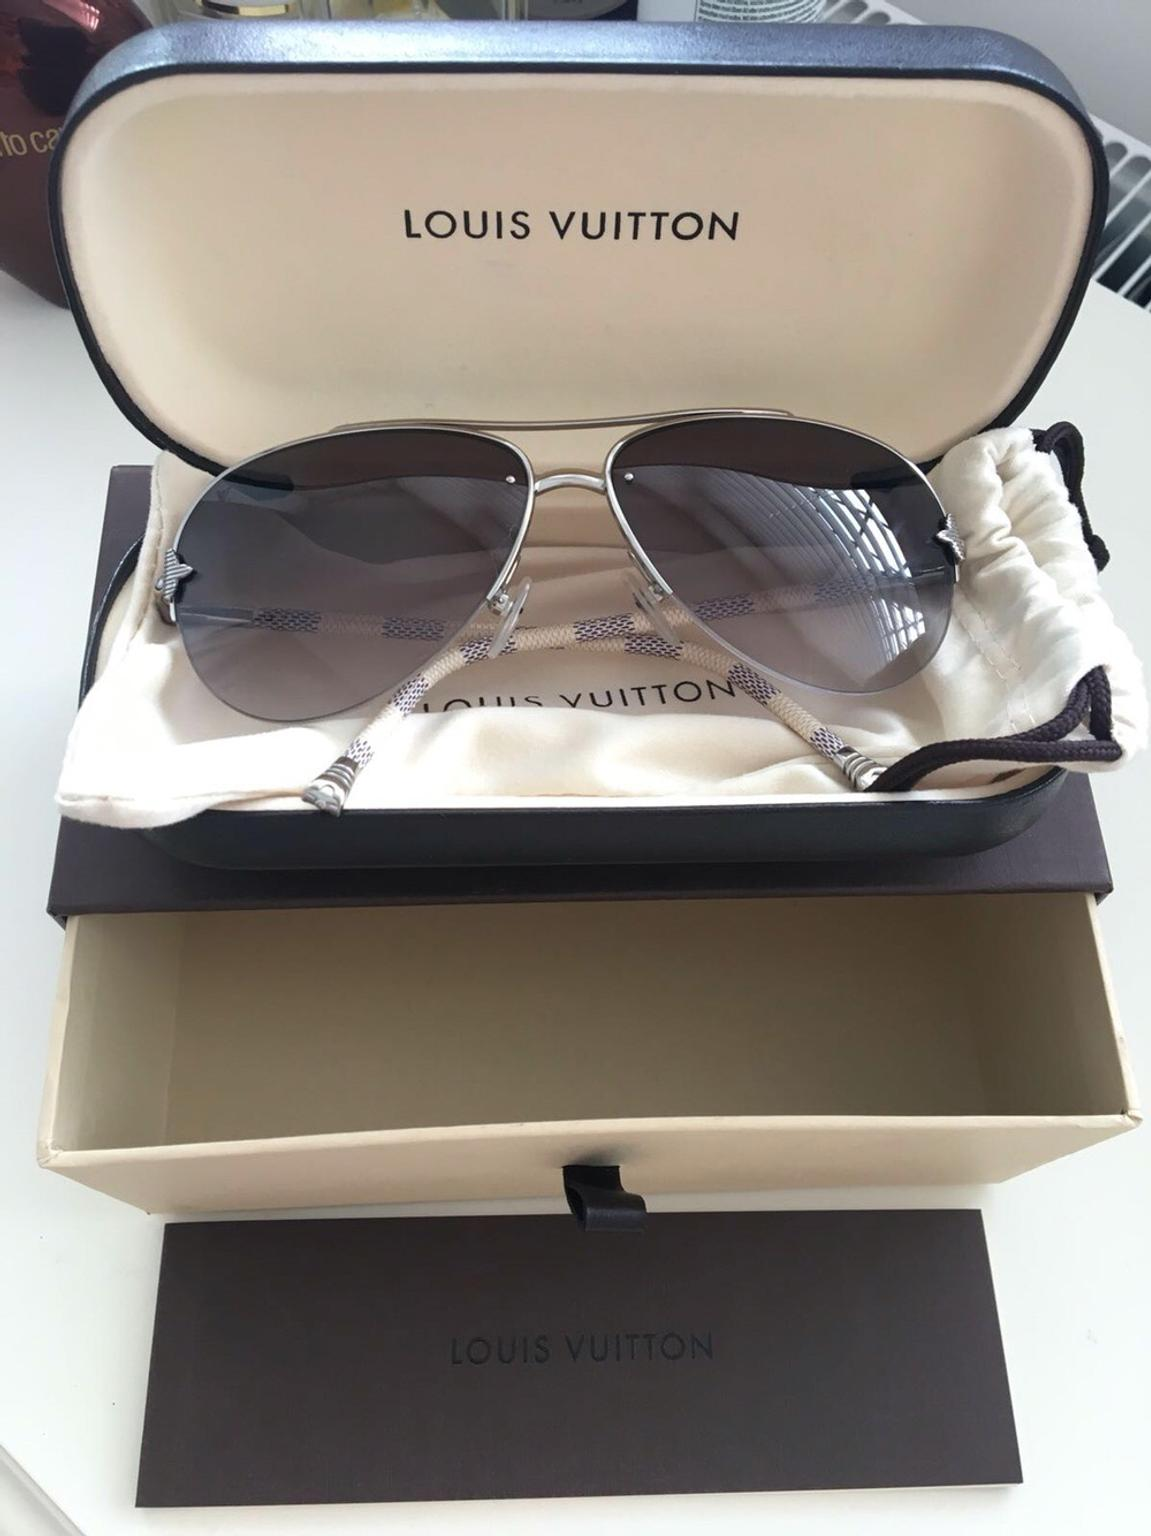 395333c9a25 Louis Vuitton PETITE VIOLA PILOTE sunglasses in KT1 East Molesey for  £260.00 for sale - Shpock